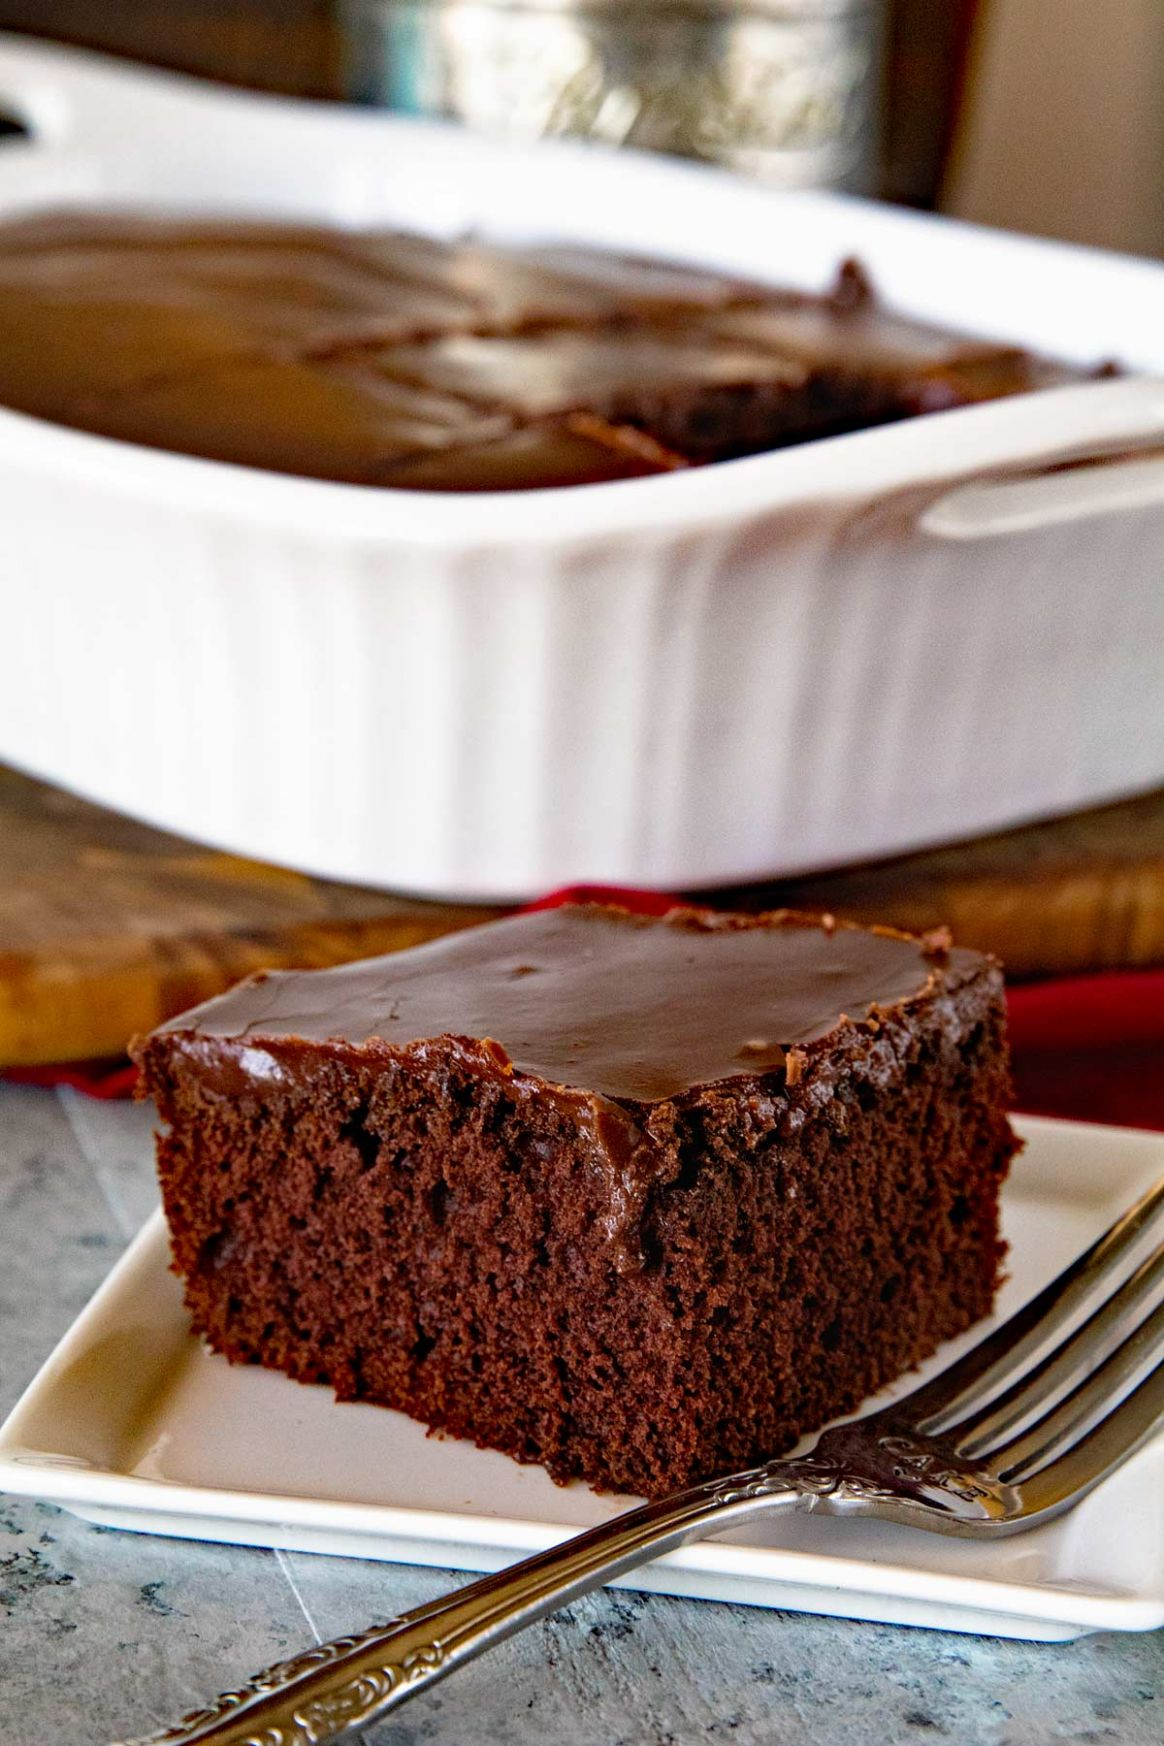 Homemade Chocolate Cake with Chocolate Frosting - Recipes Chocolate Easy